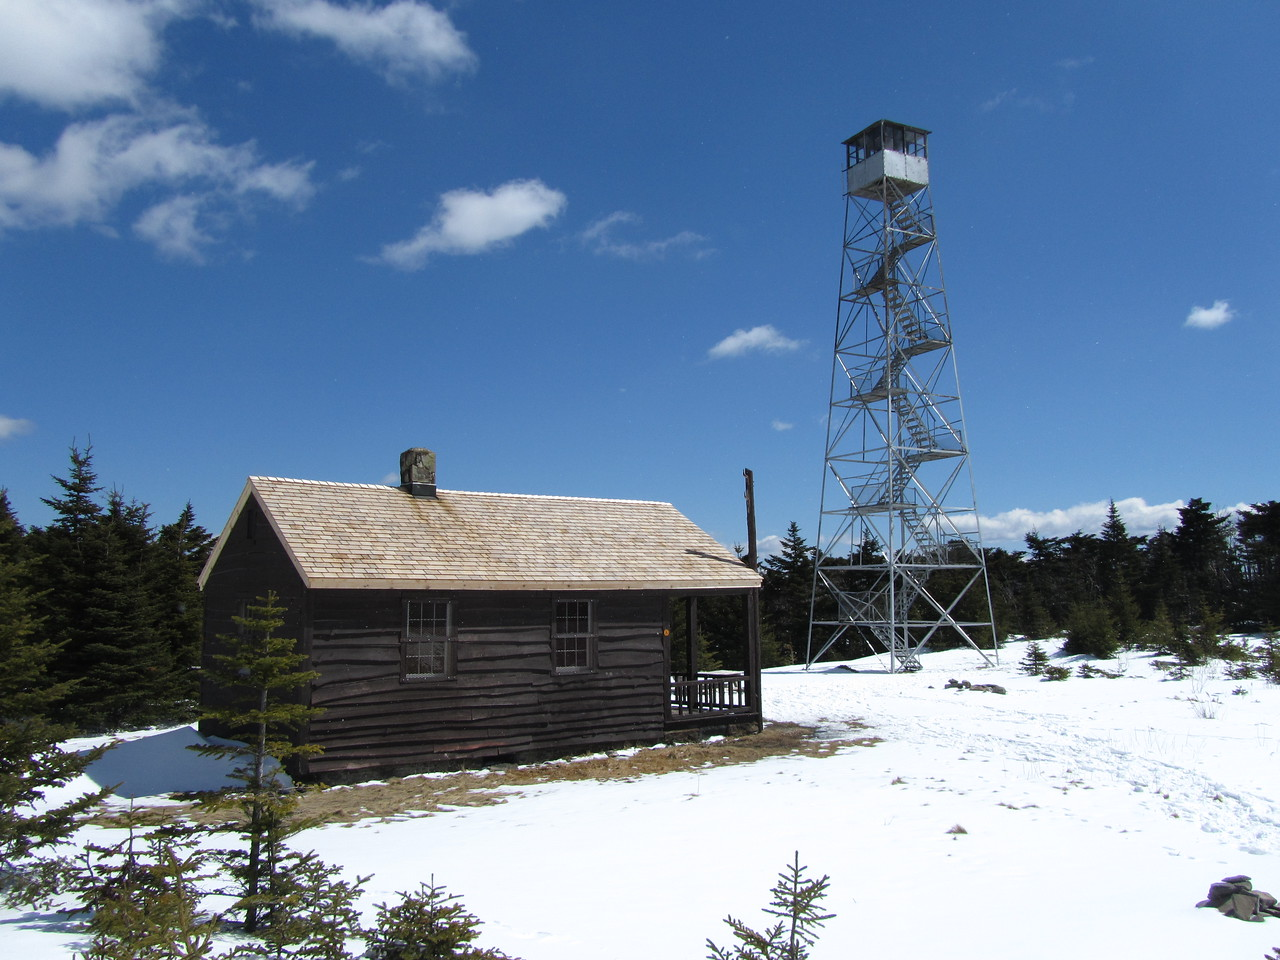 Tower and cabin. Almost looks like a computer model. It is so clear and crisp.